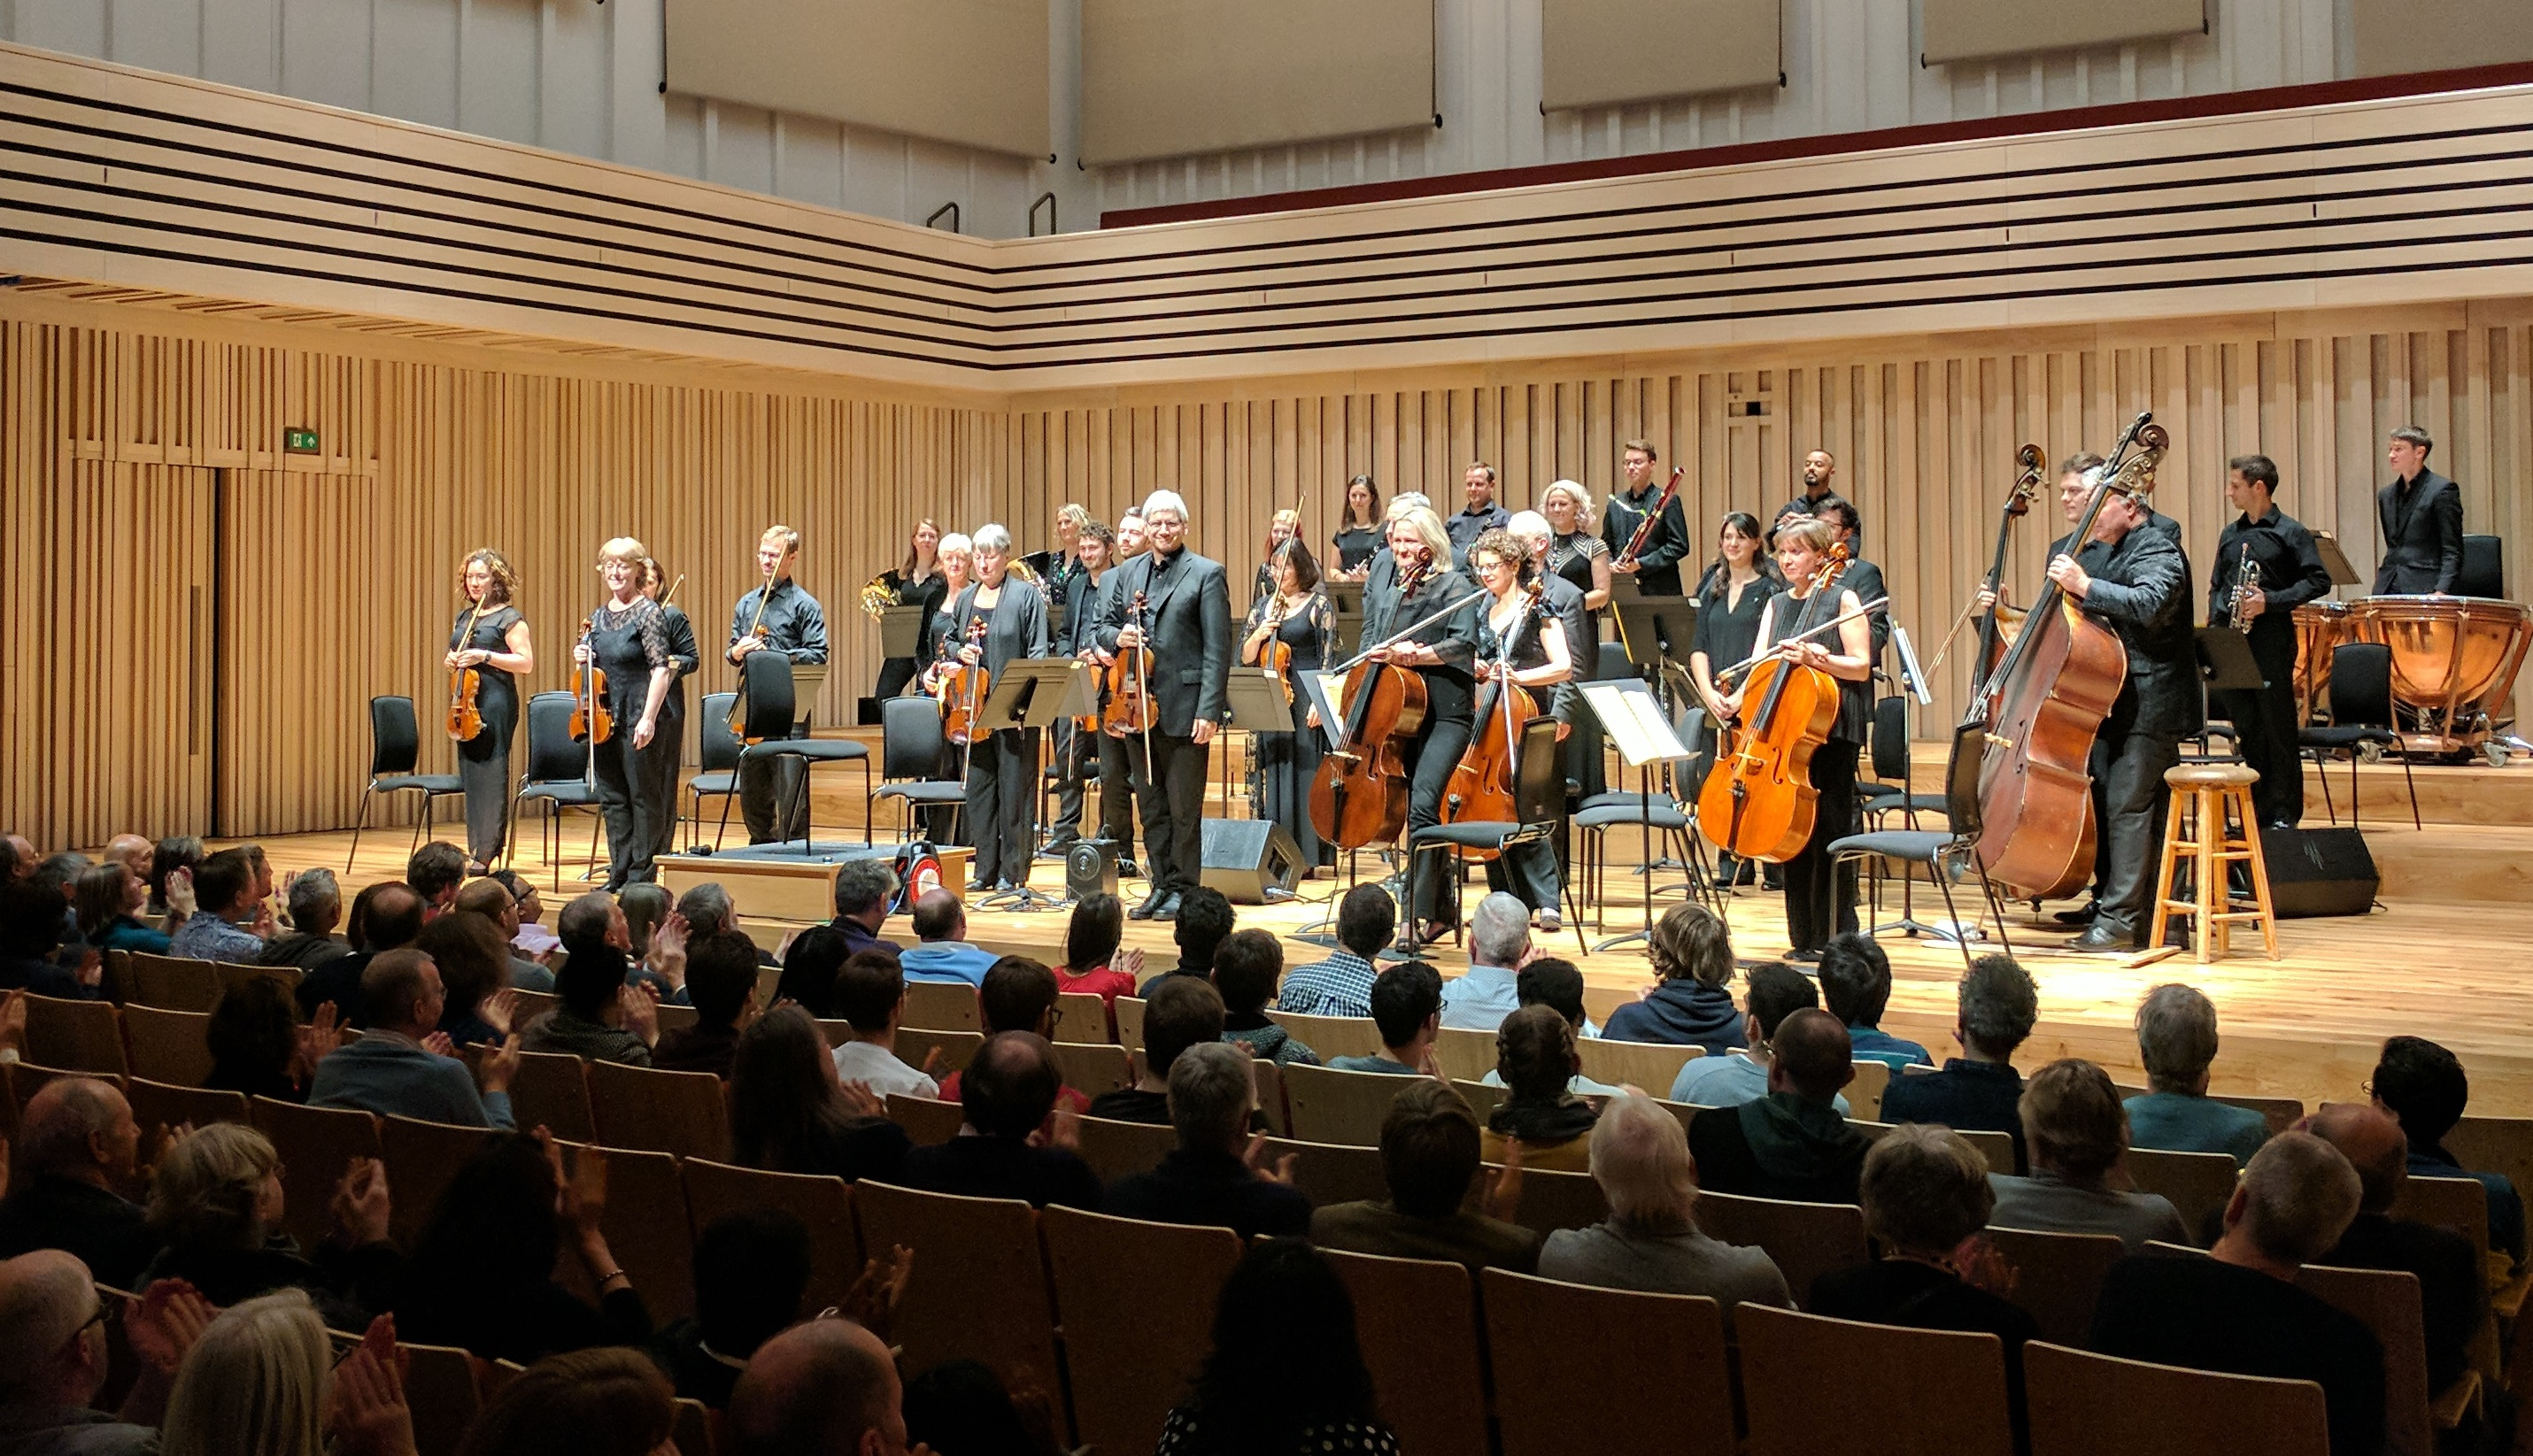 https://www.ncorch.co.uk/northern-chamber-orchestra-becomes-orchestra-association-stoller-hall/